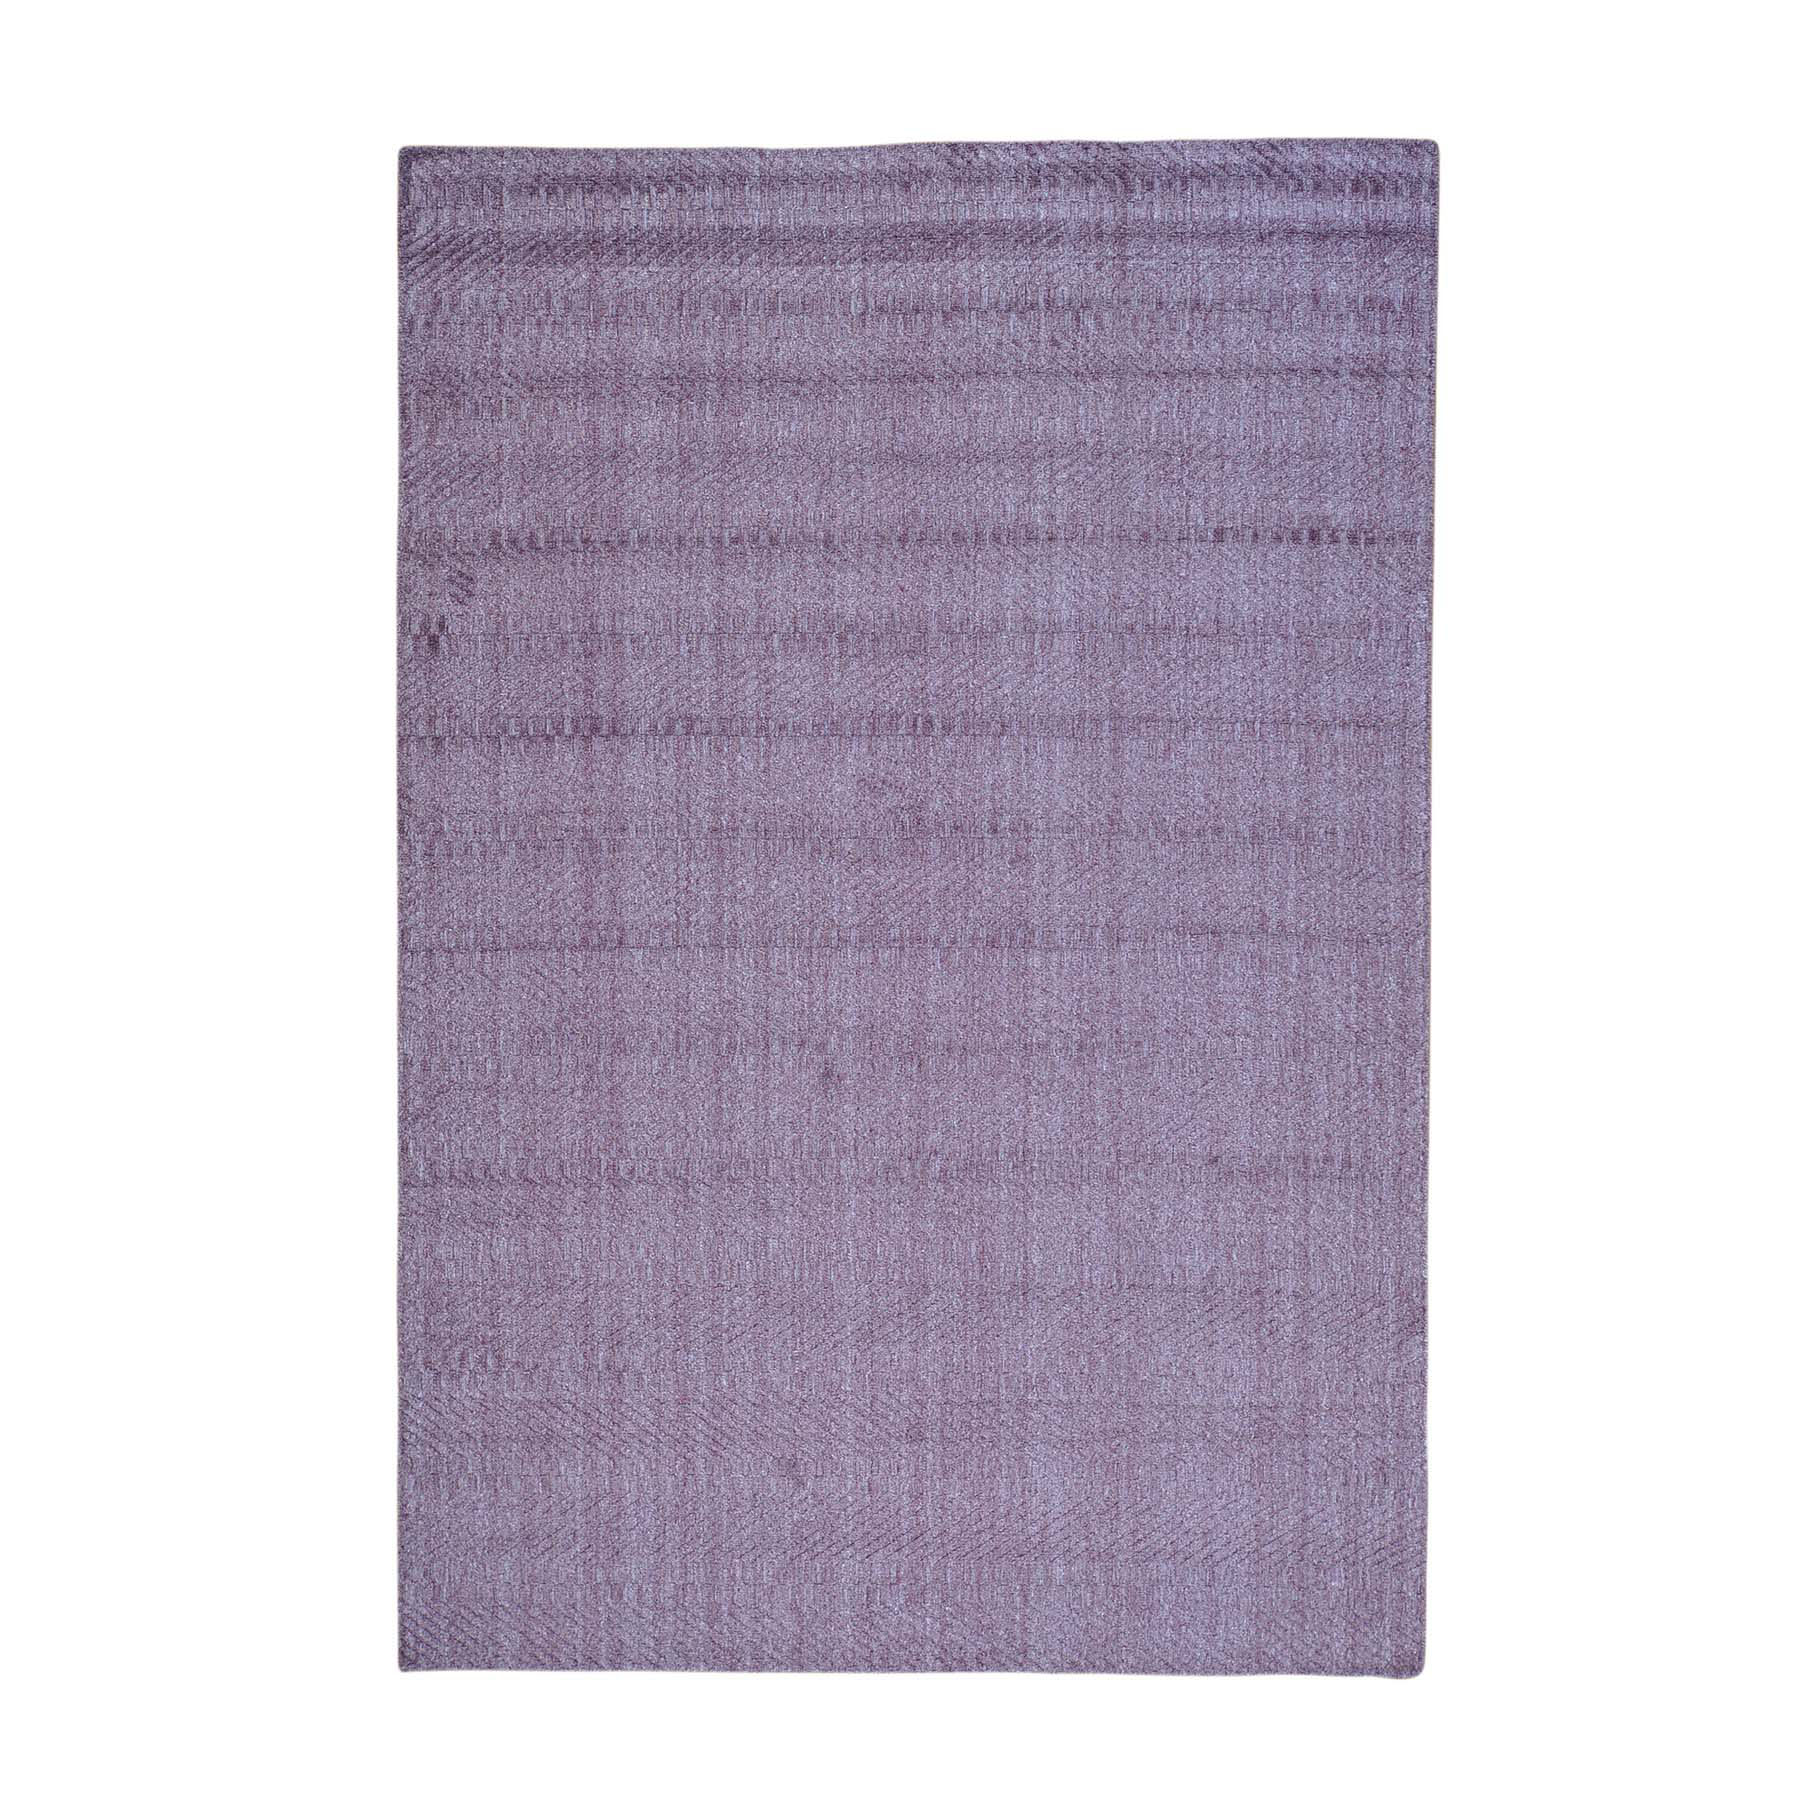 Mid Century Modern Collection Hand Loomed Purple Rug No: 0159446